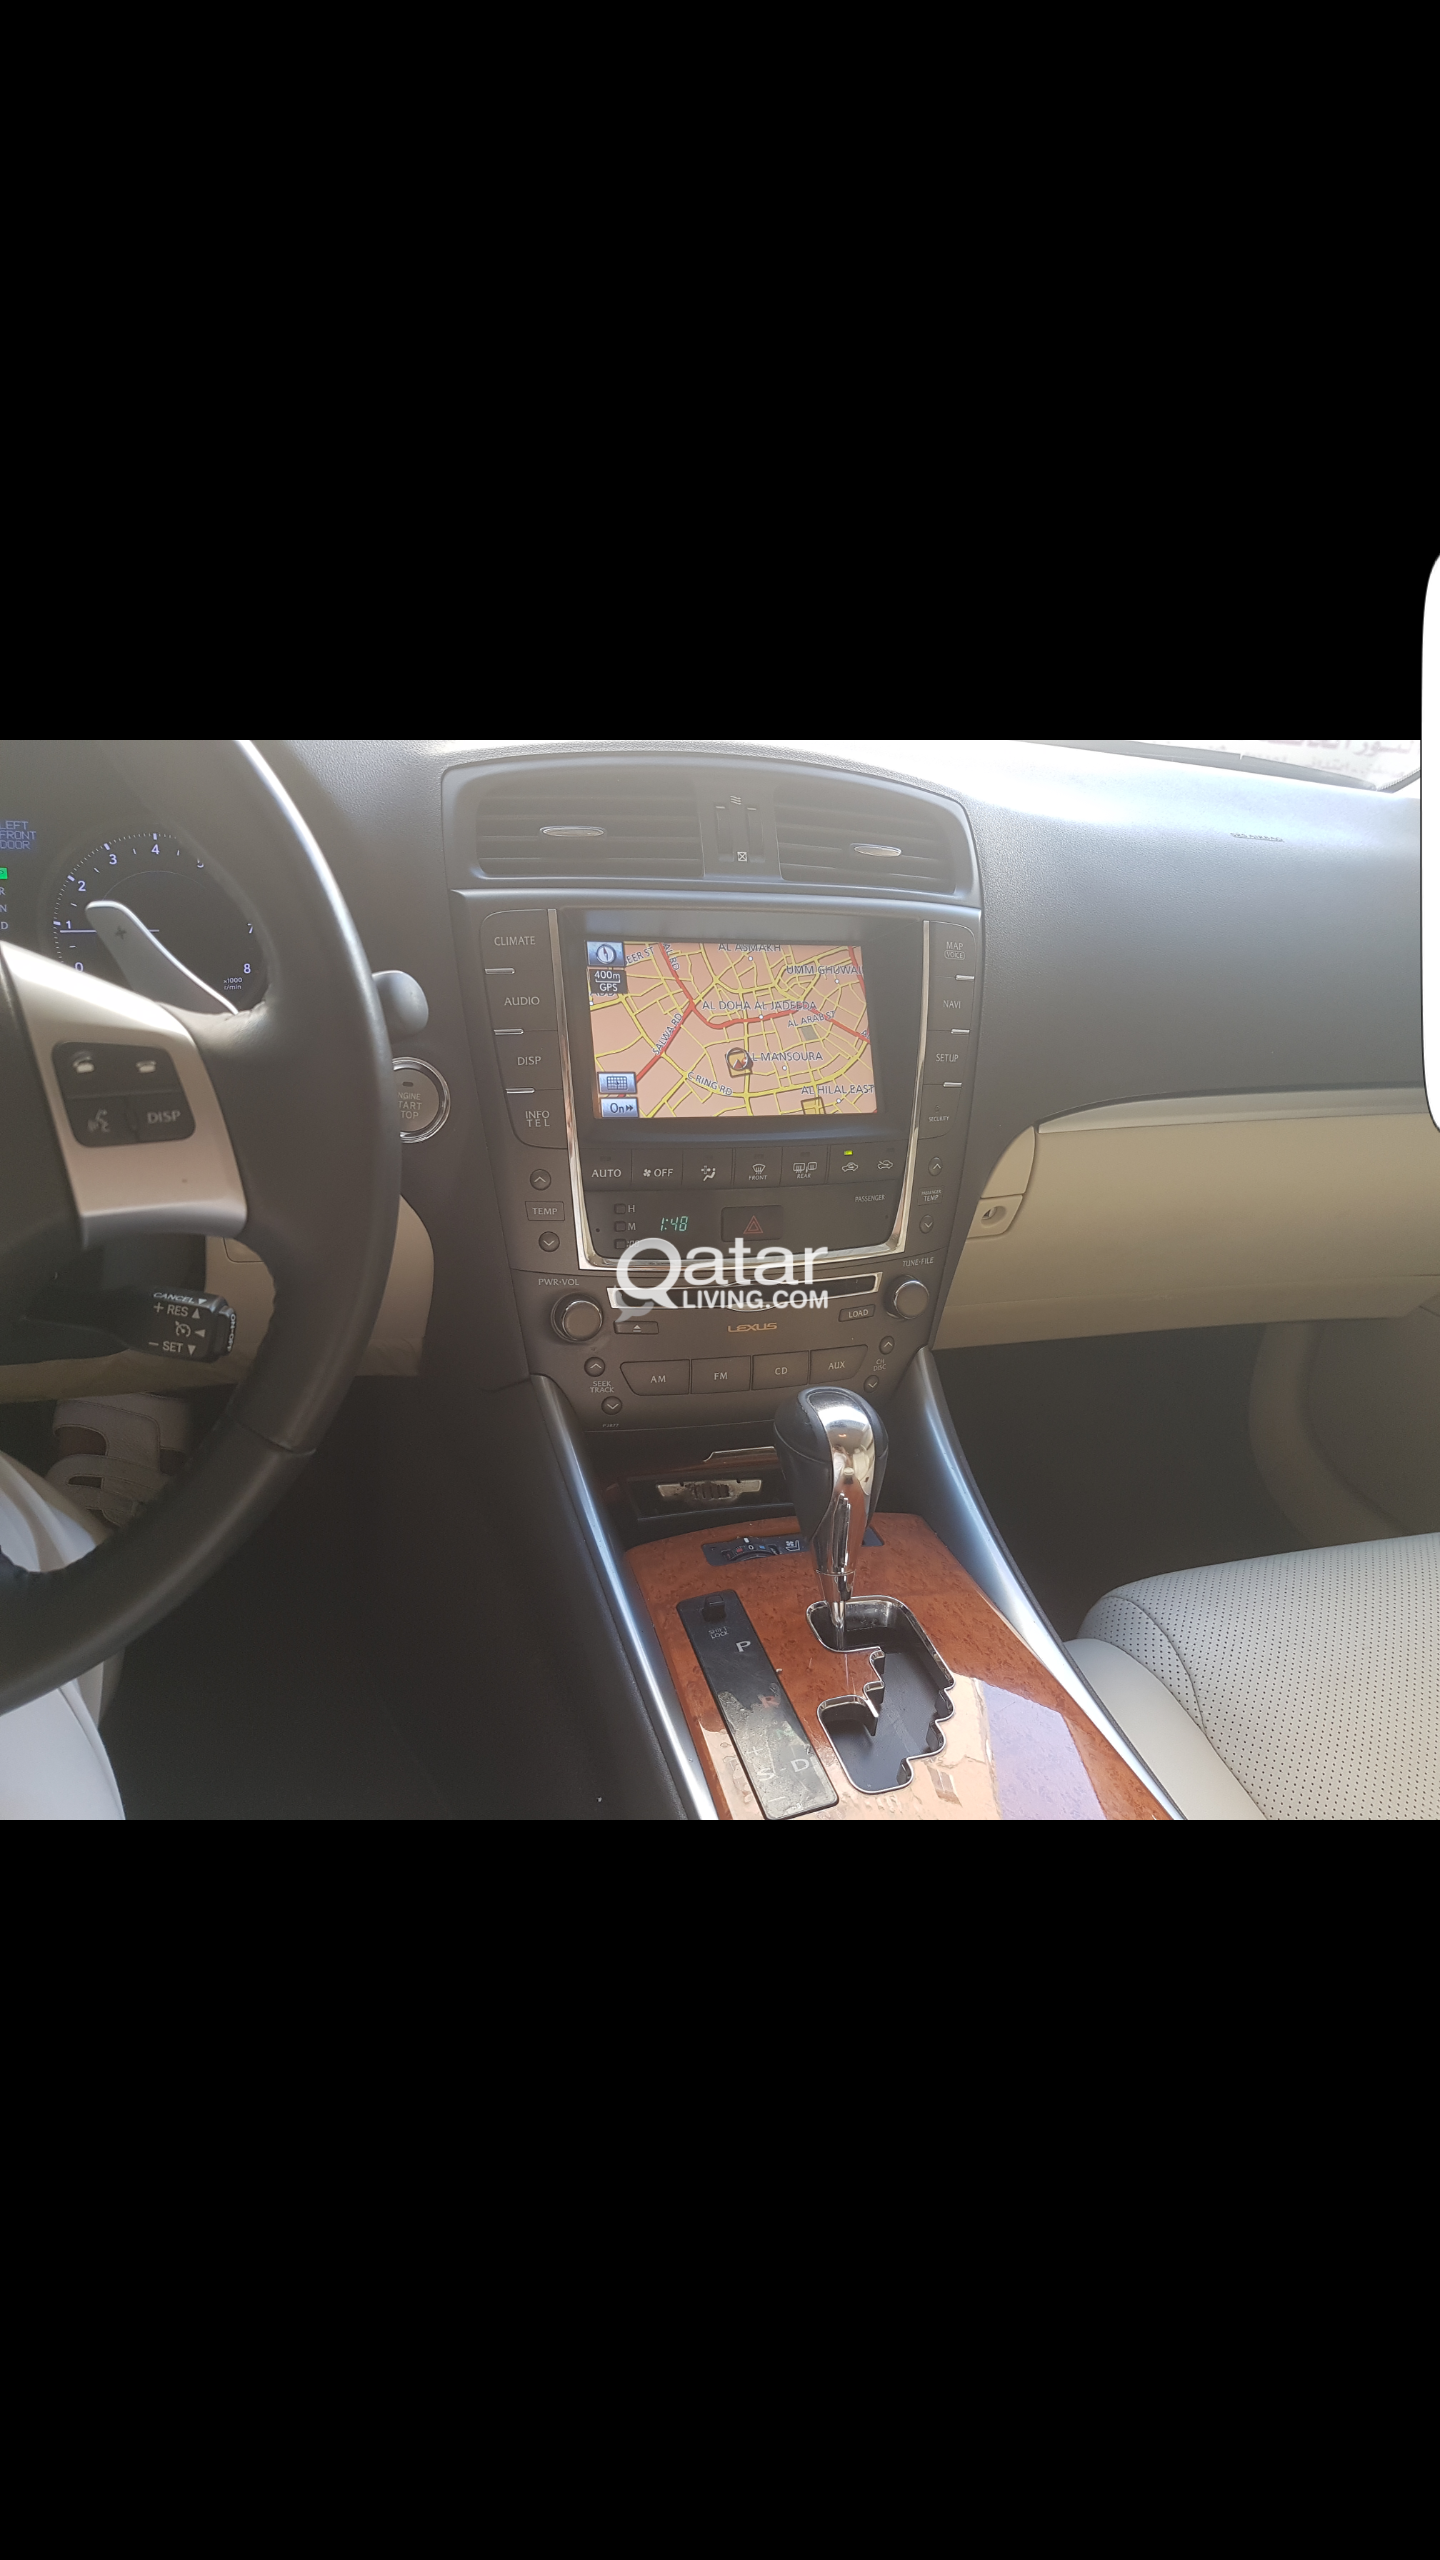 lexus is 300 2011 v6 | qatar living